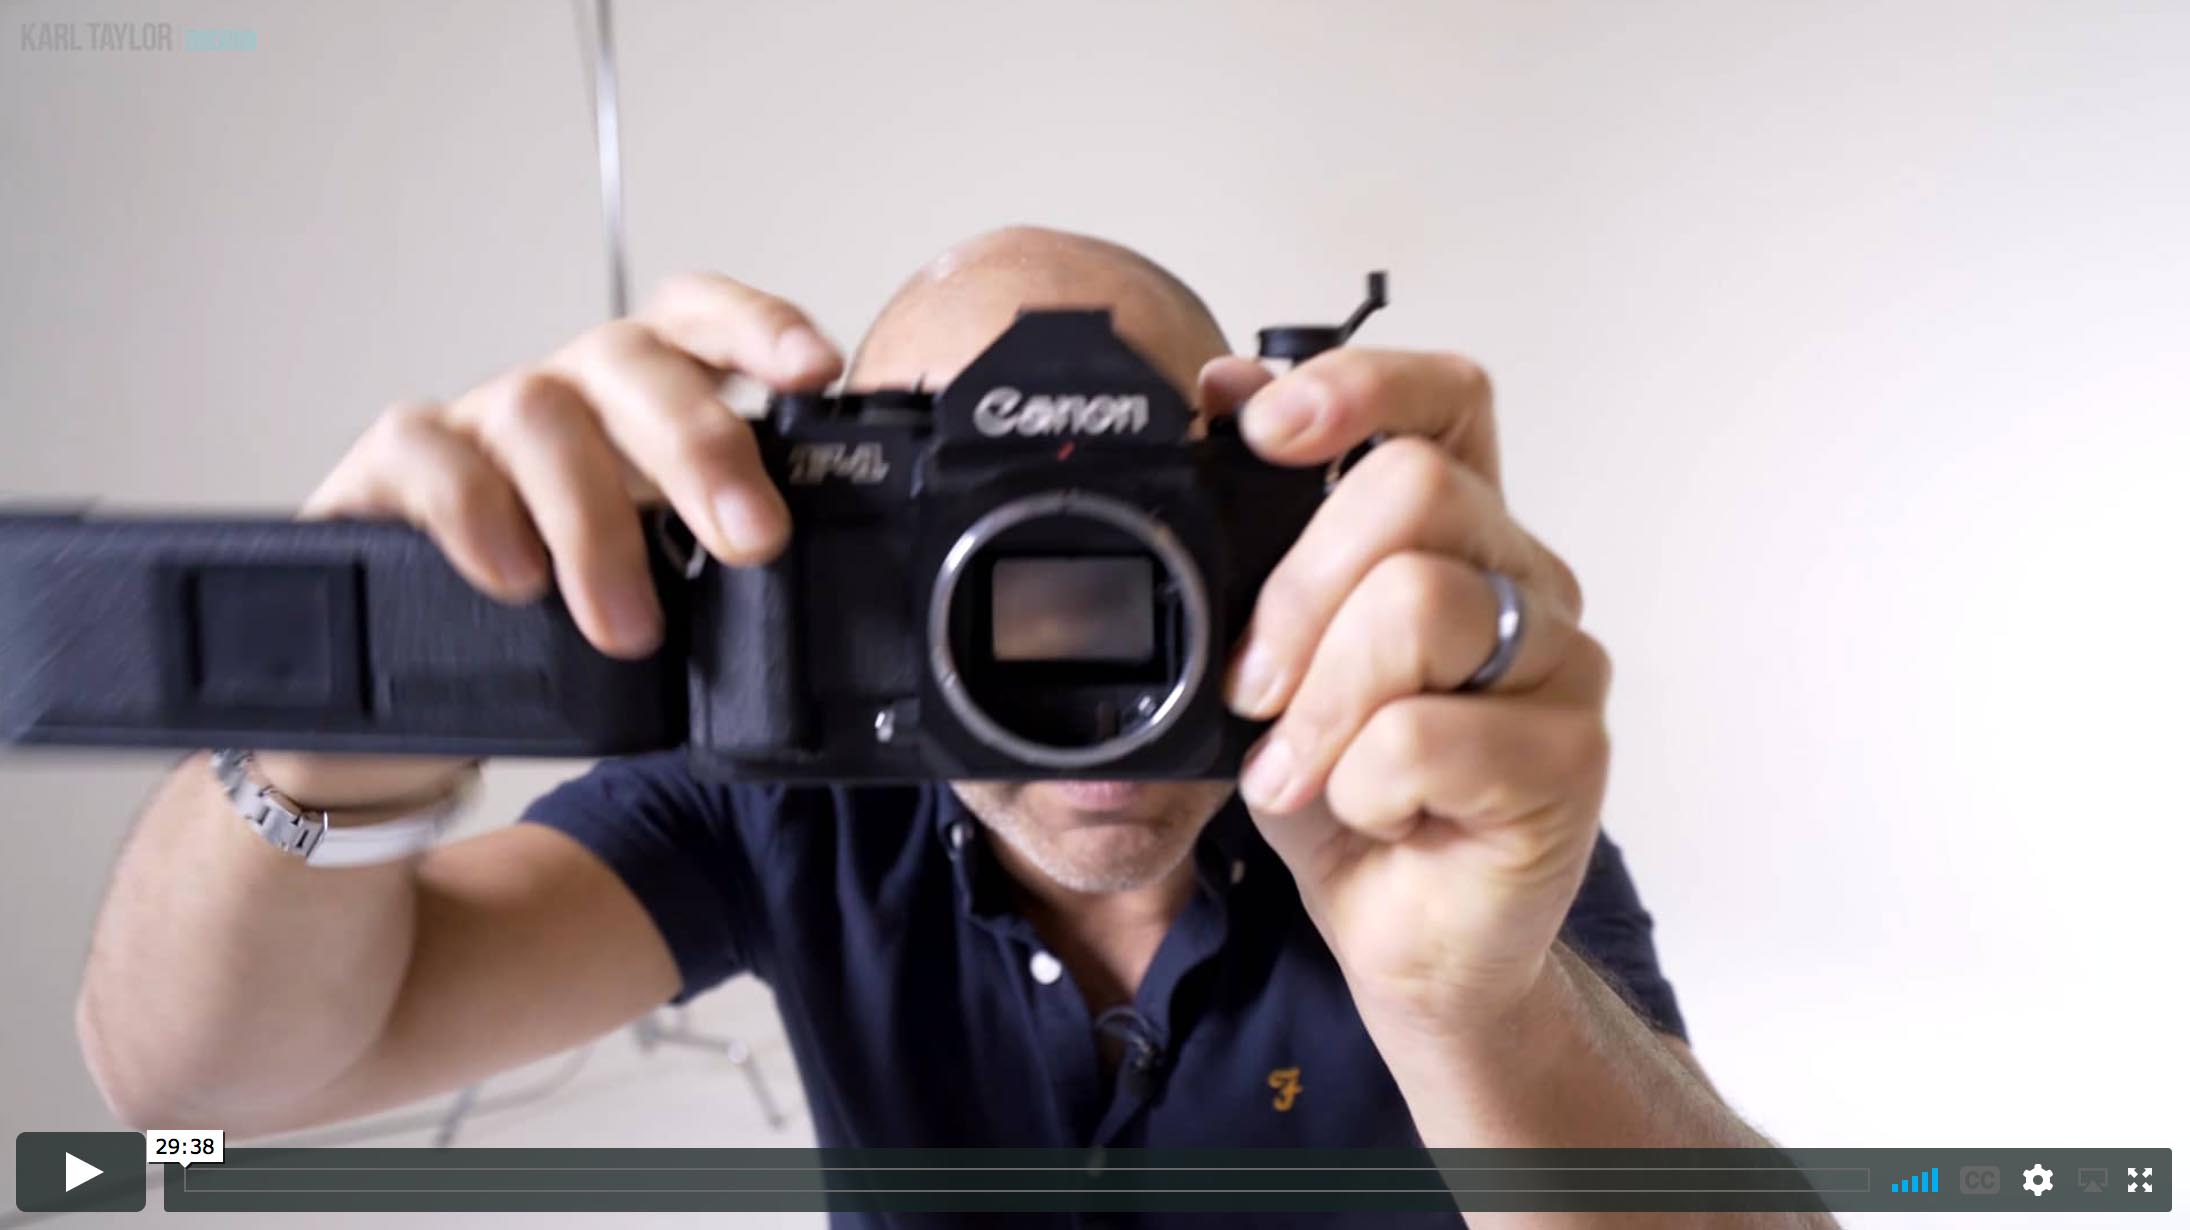 05. The relationship of shutter speeds and apertures to flash